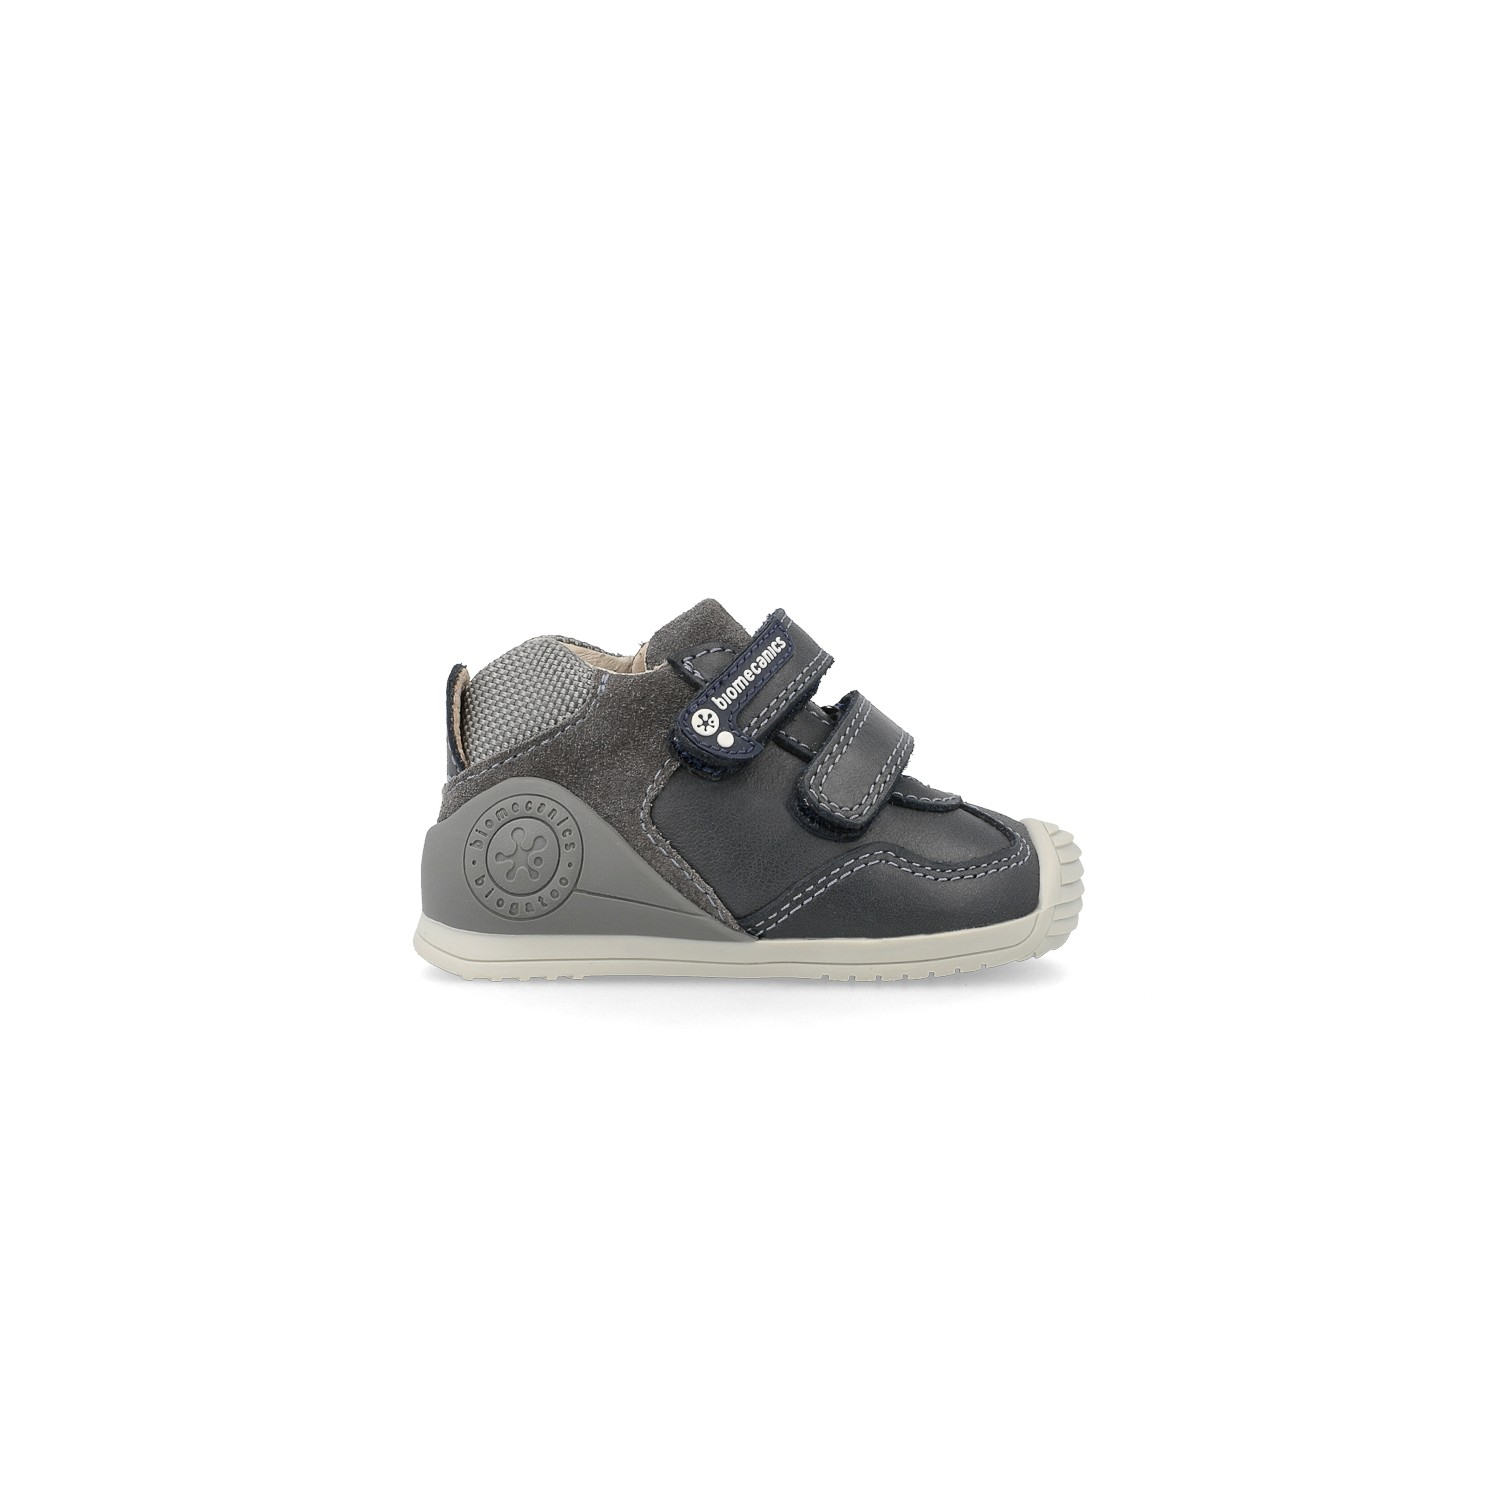 Sneakers for baby Brad